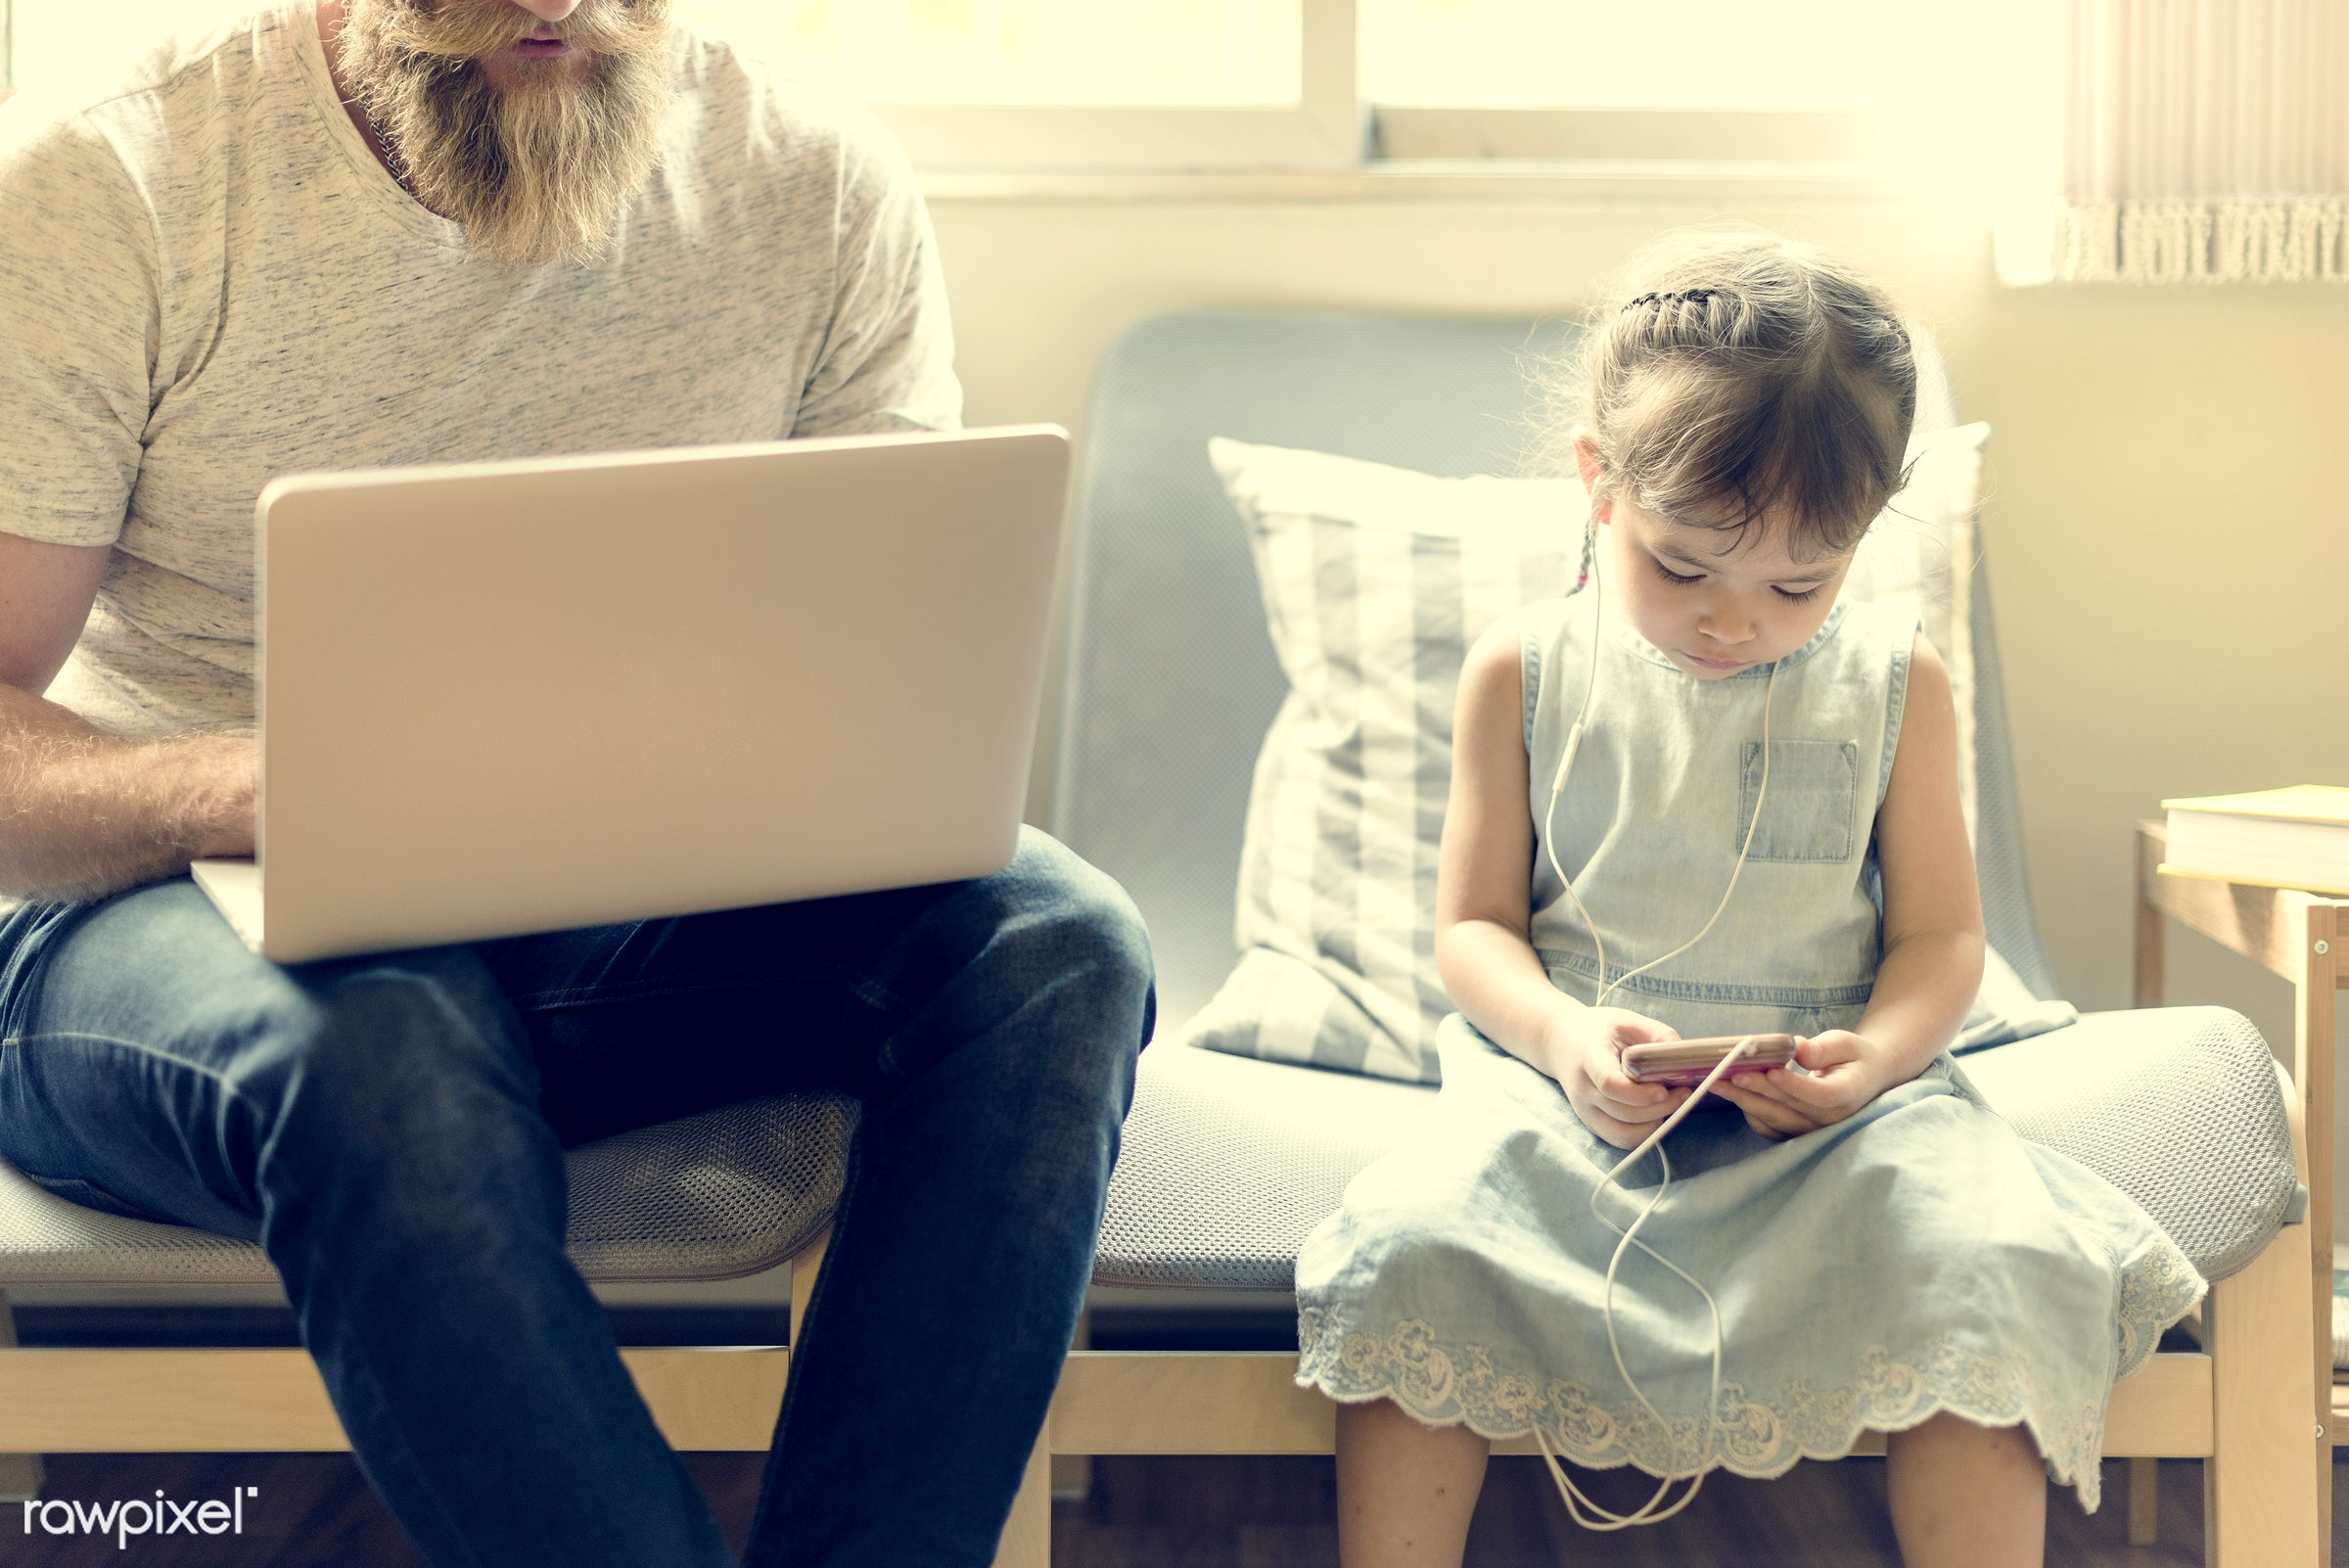 casual, adult, asian, caucasian, child, childhood, communication, connection, curious, cute, daughter, device, digital,...